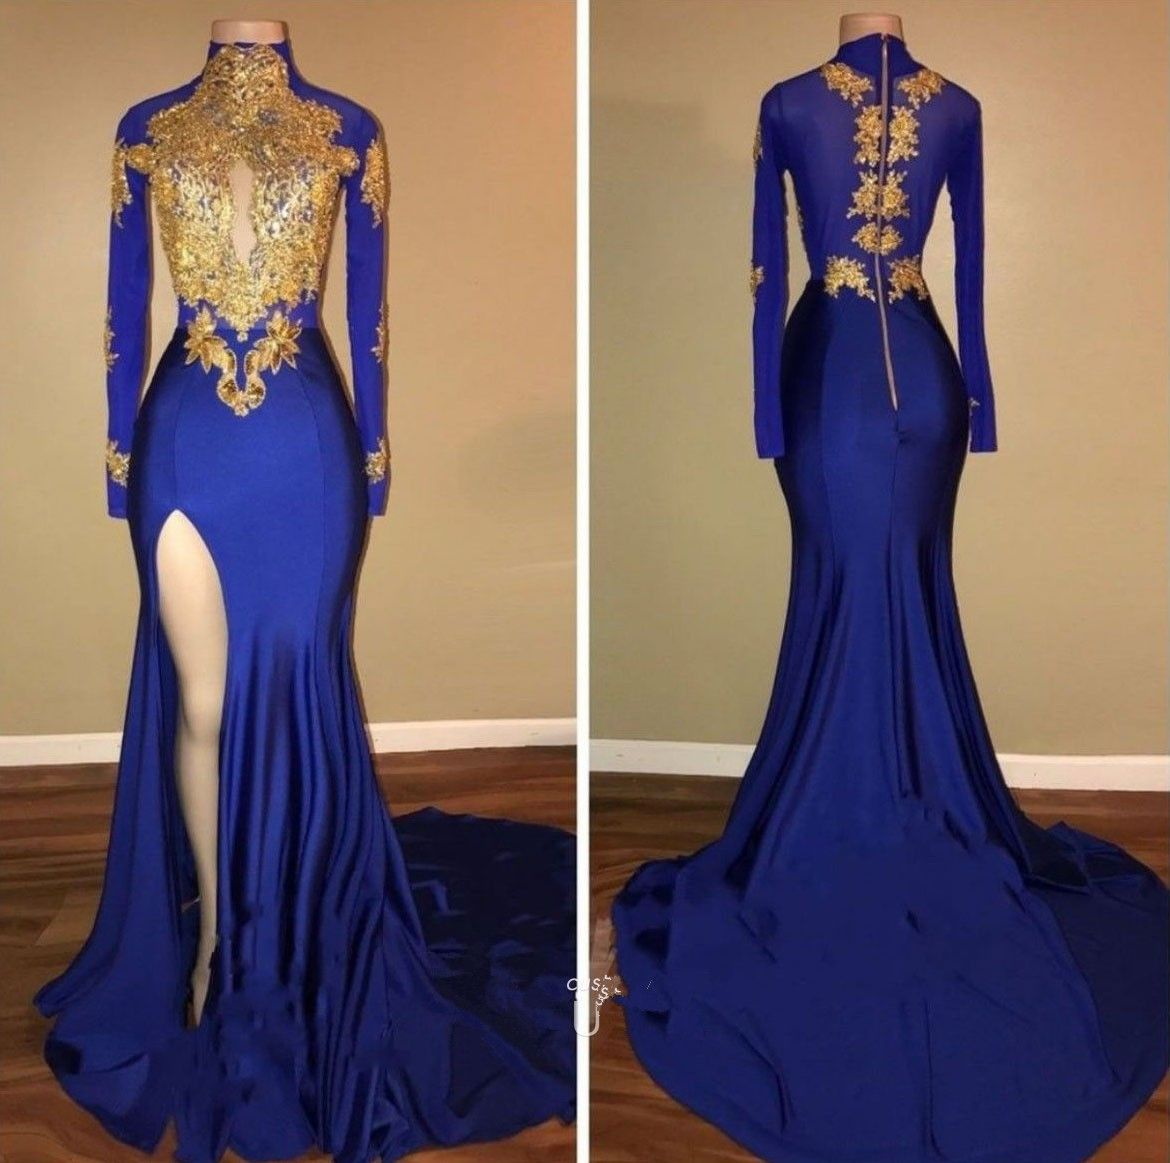 Long Sleeves Royal Blue Prom Dress with Gold Vestiditos